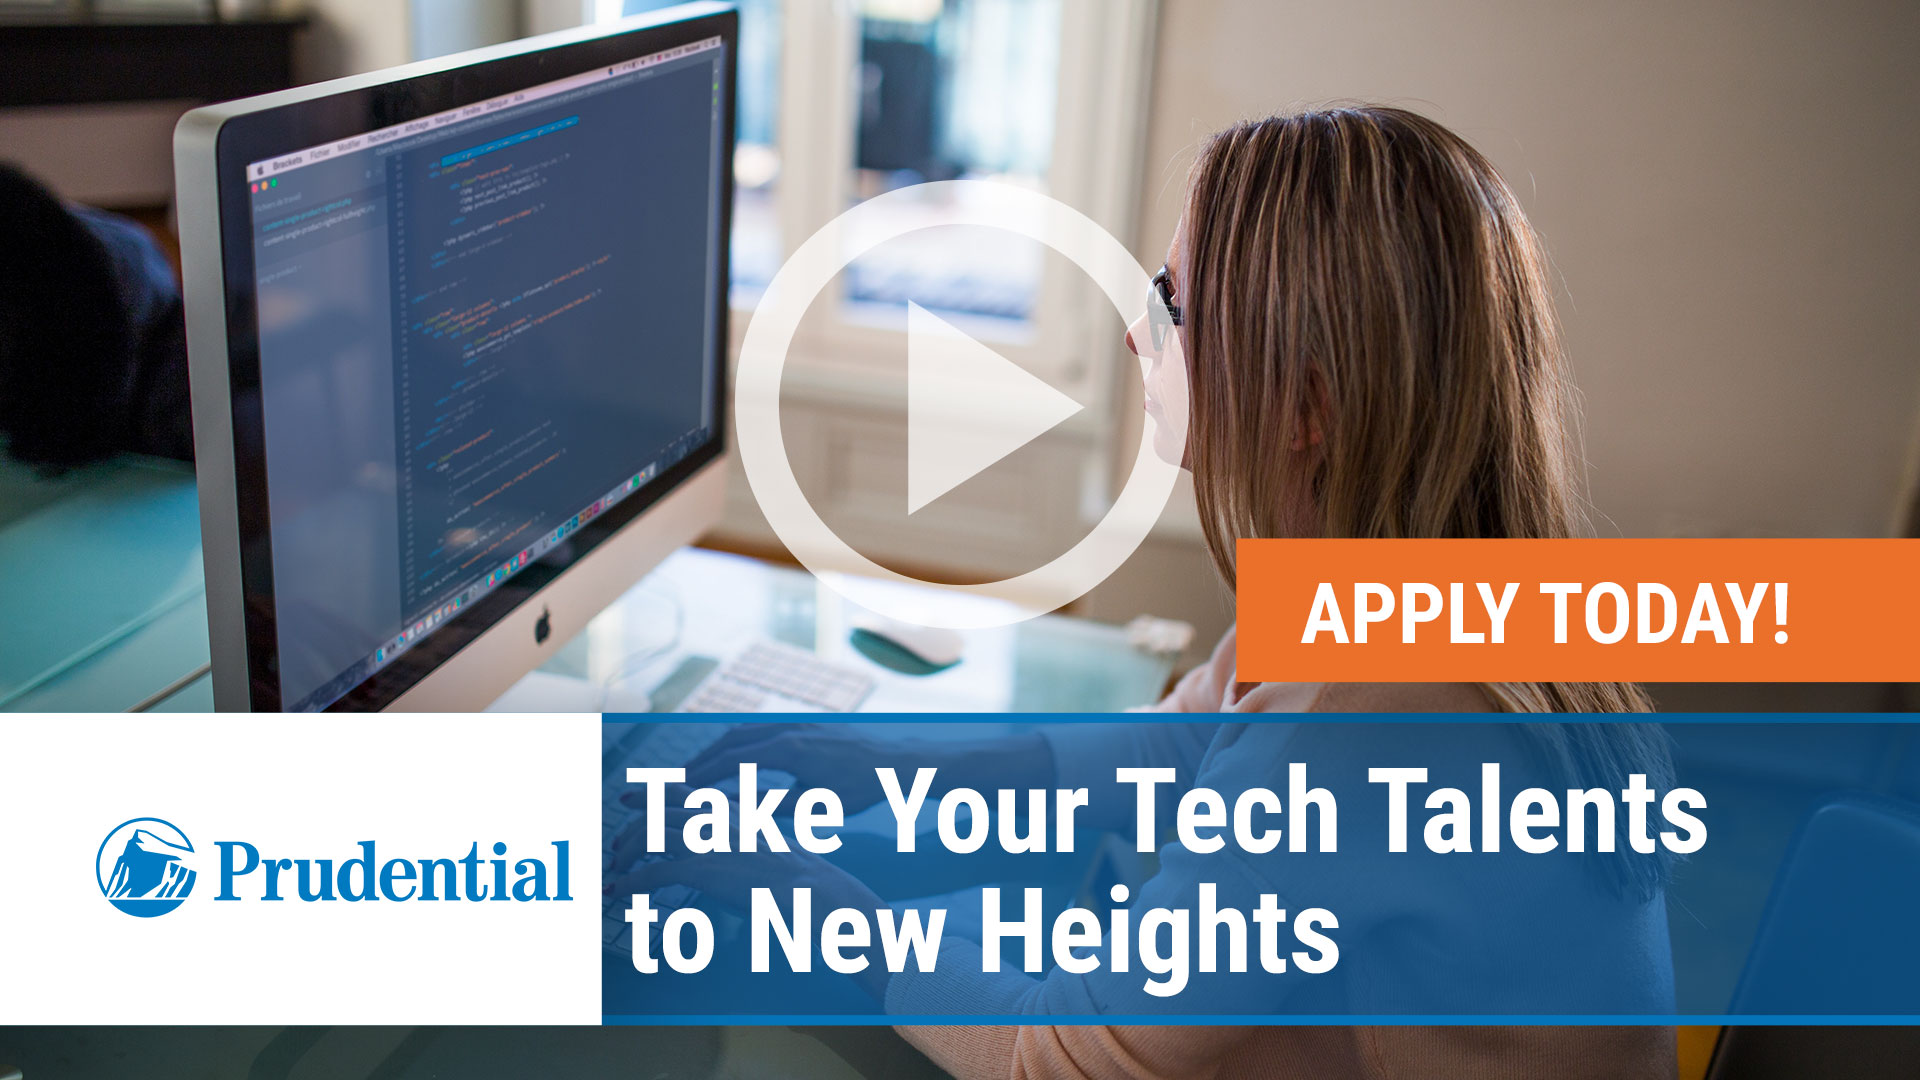 Watch our careers video for available job opening Take Your Tech Talents to New Heights in Newark NJ, Sunnyvale CA